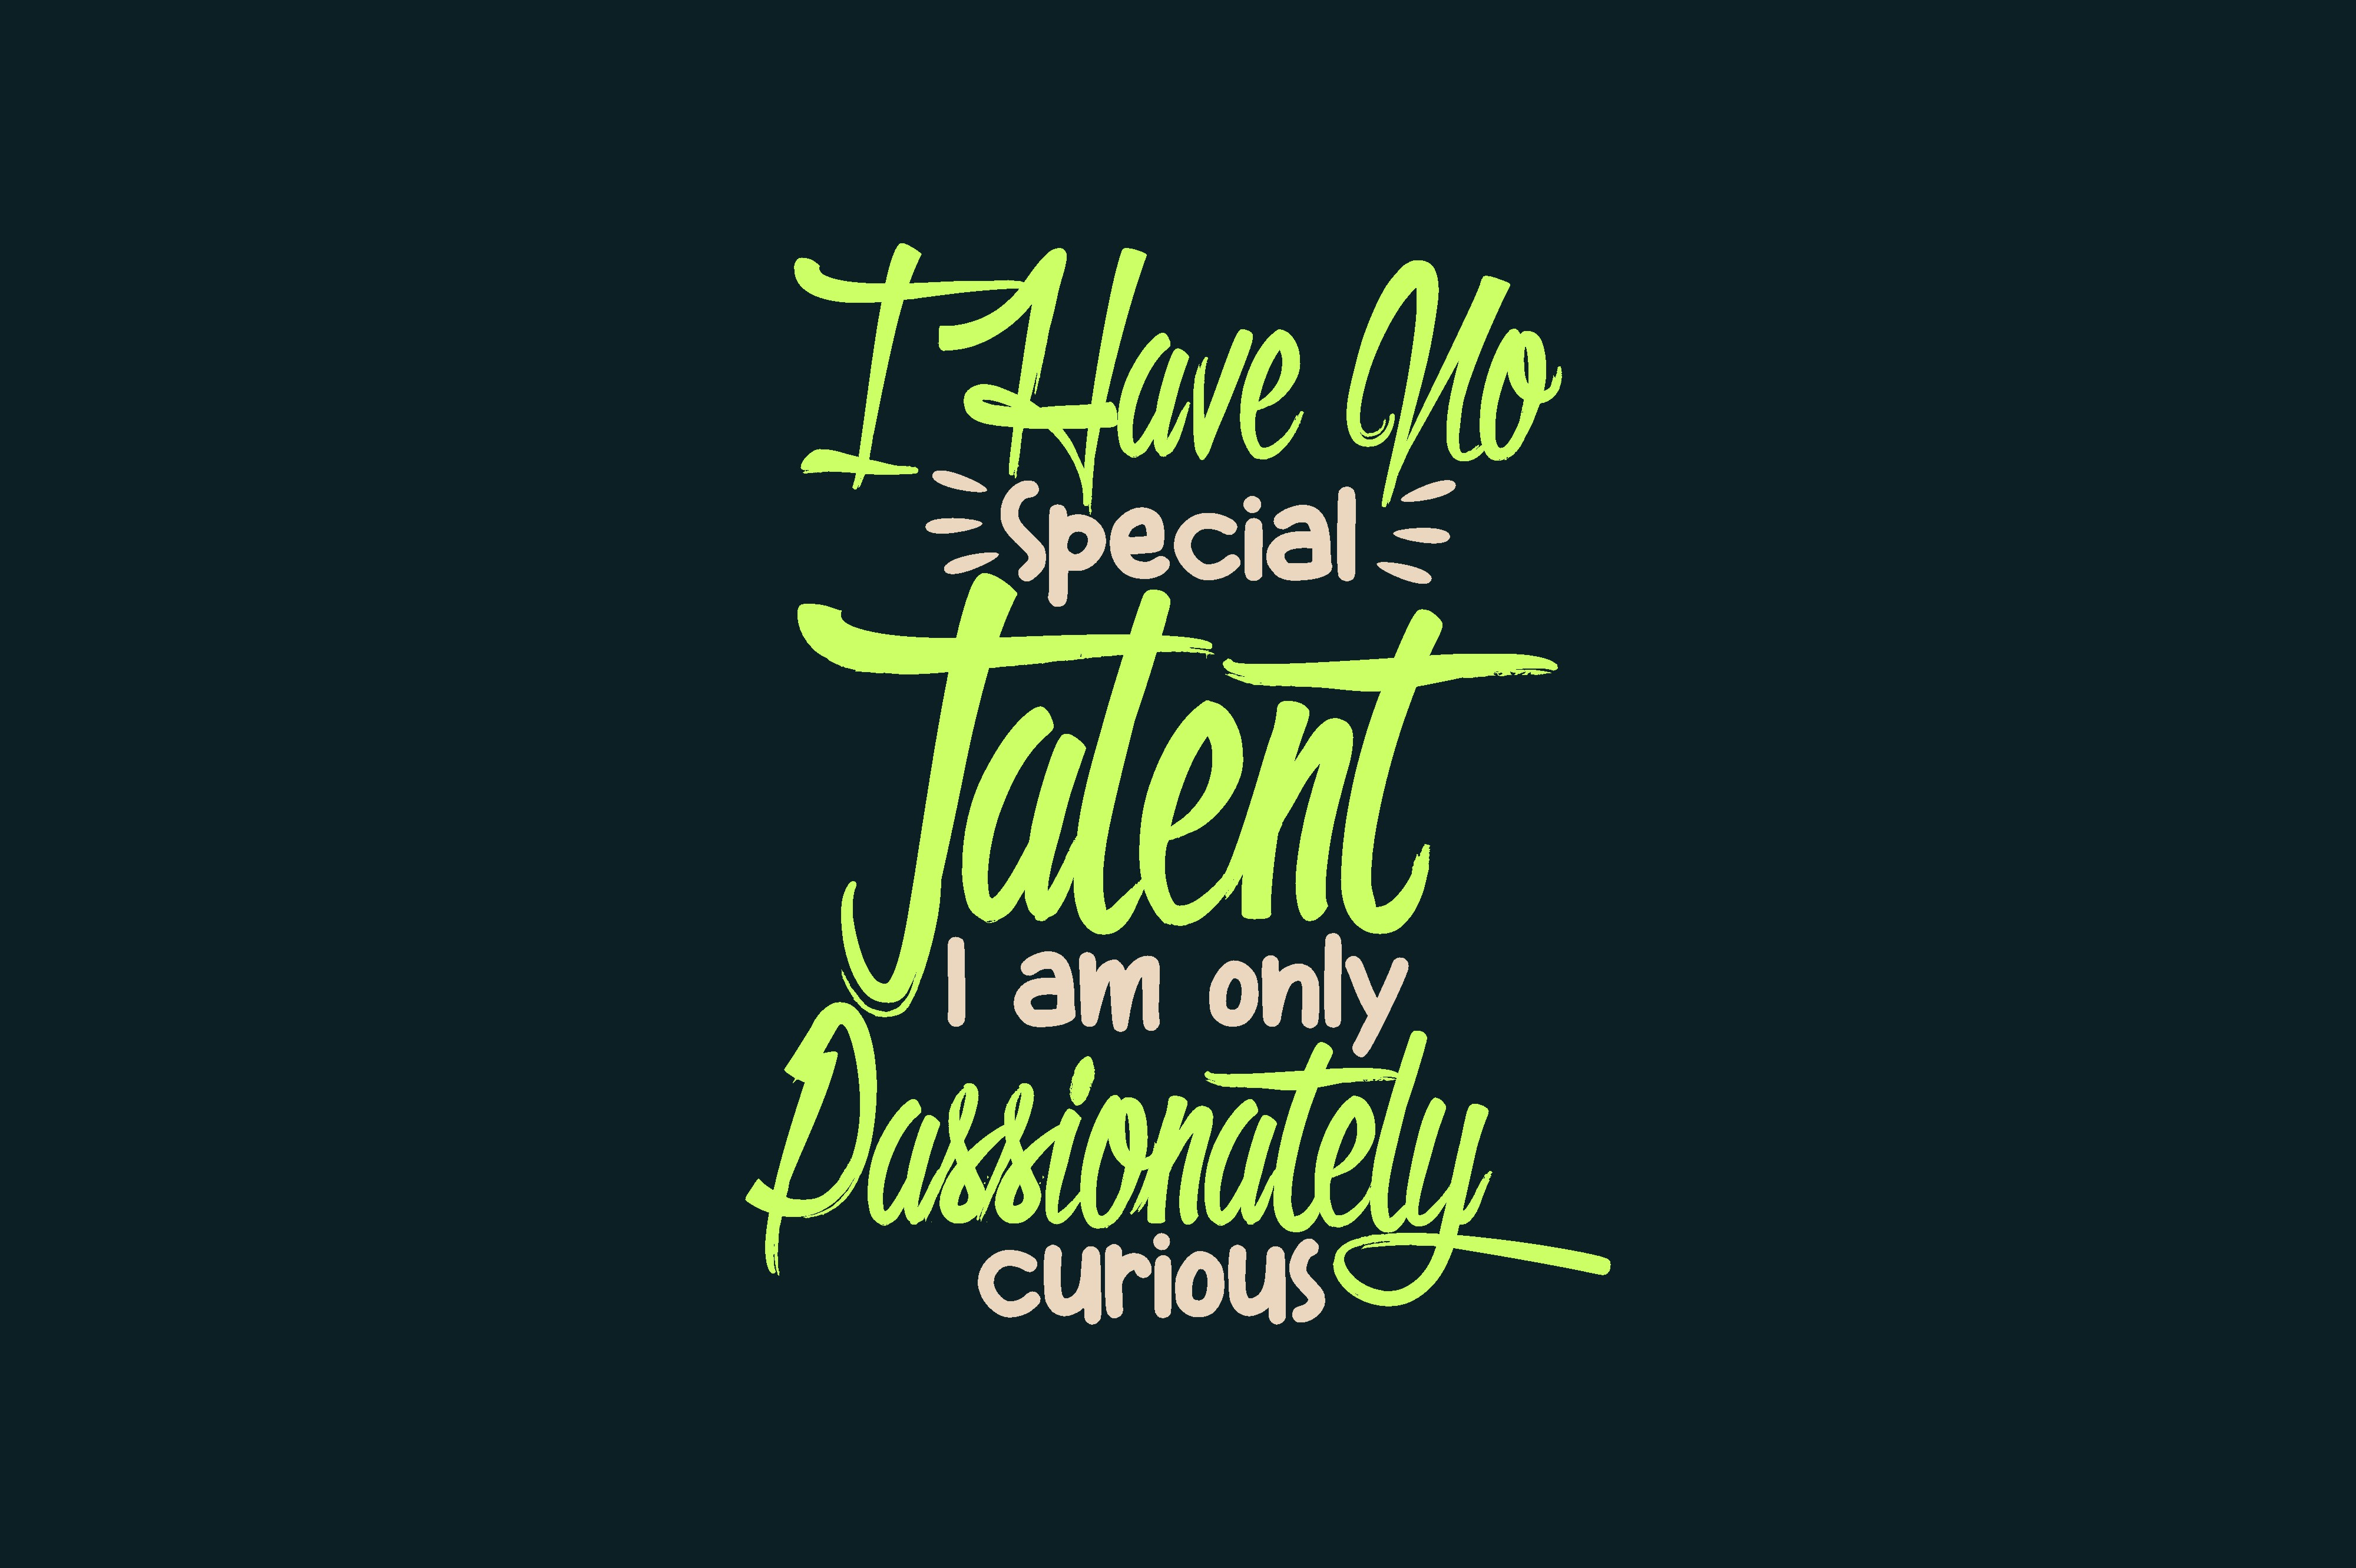 Download Free I Have No Special Talent I Am Only Passionately Curious Graphic for Cricut Explore, Silhouette and other cutting machines.